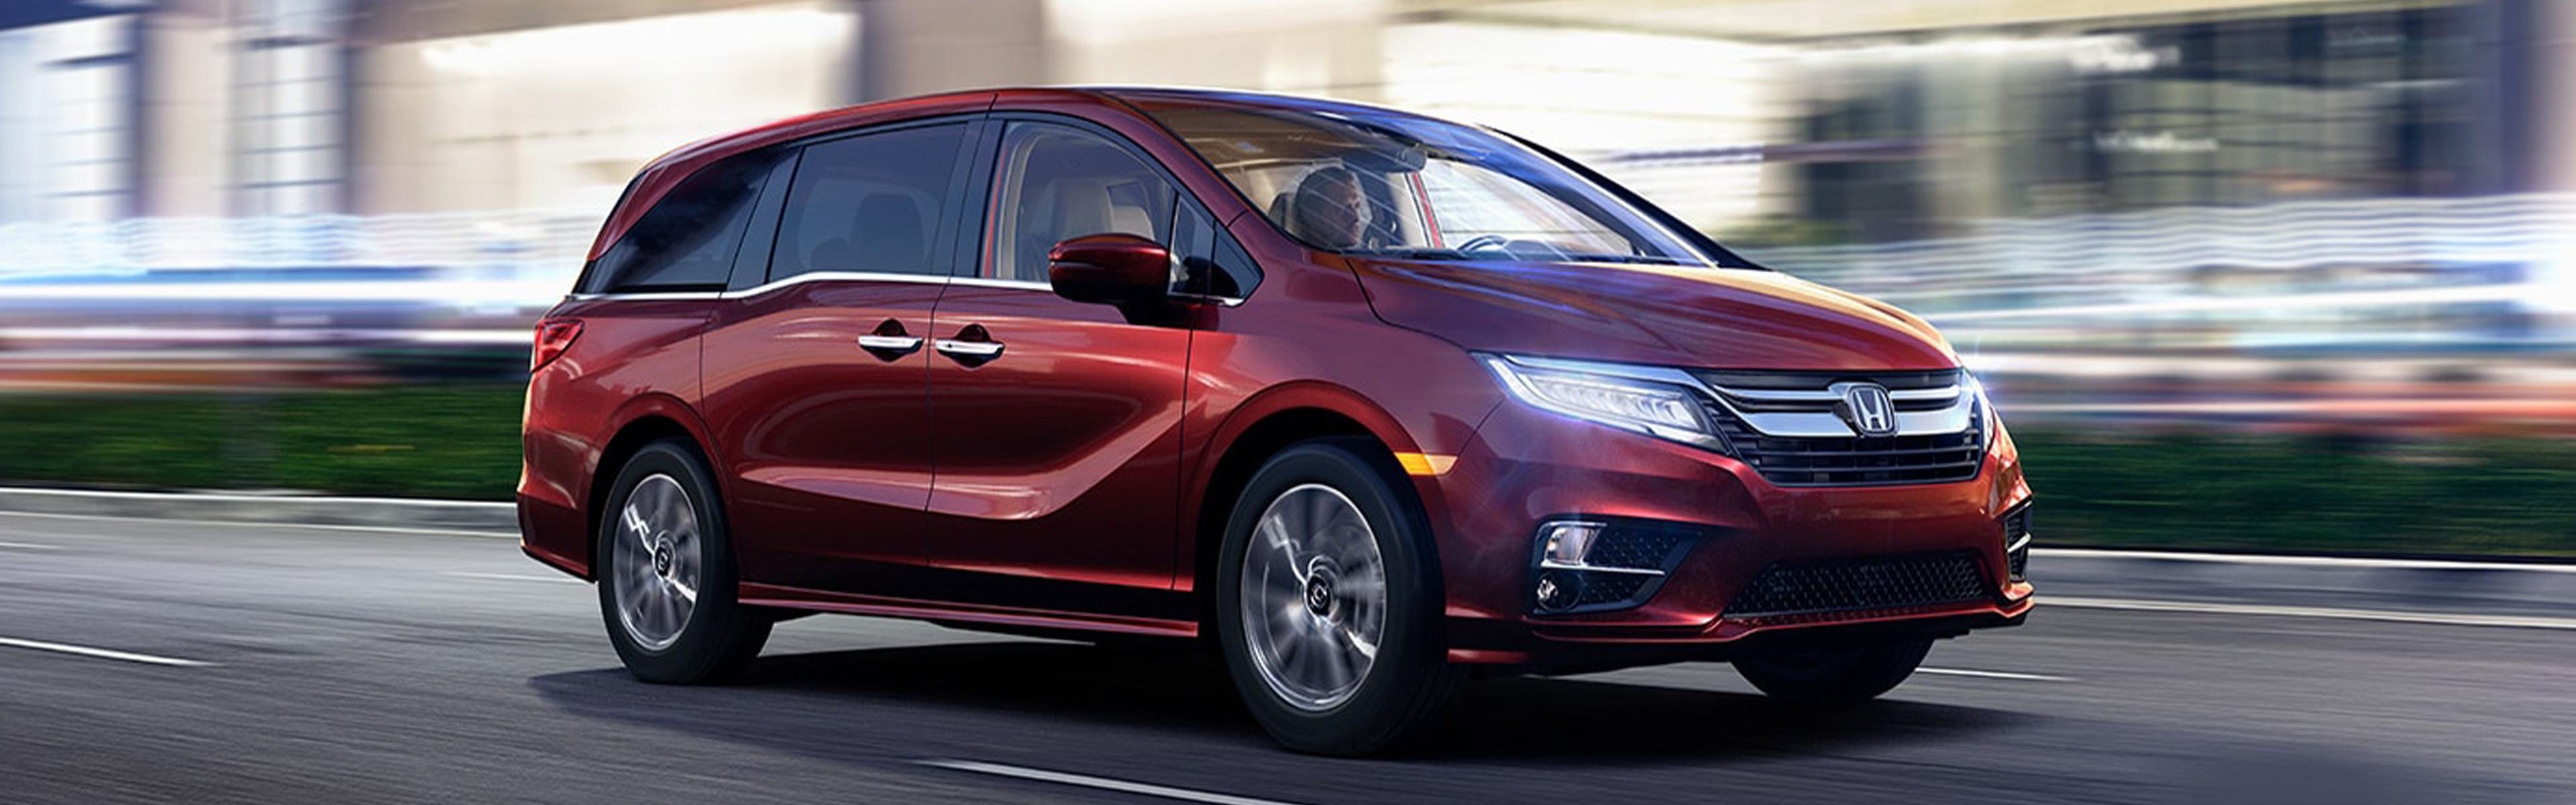 2020 Honda Odyssey Minivans For Sale In New Glasgow, Nova Scotia